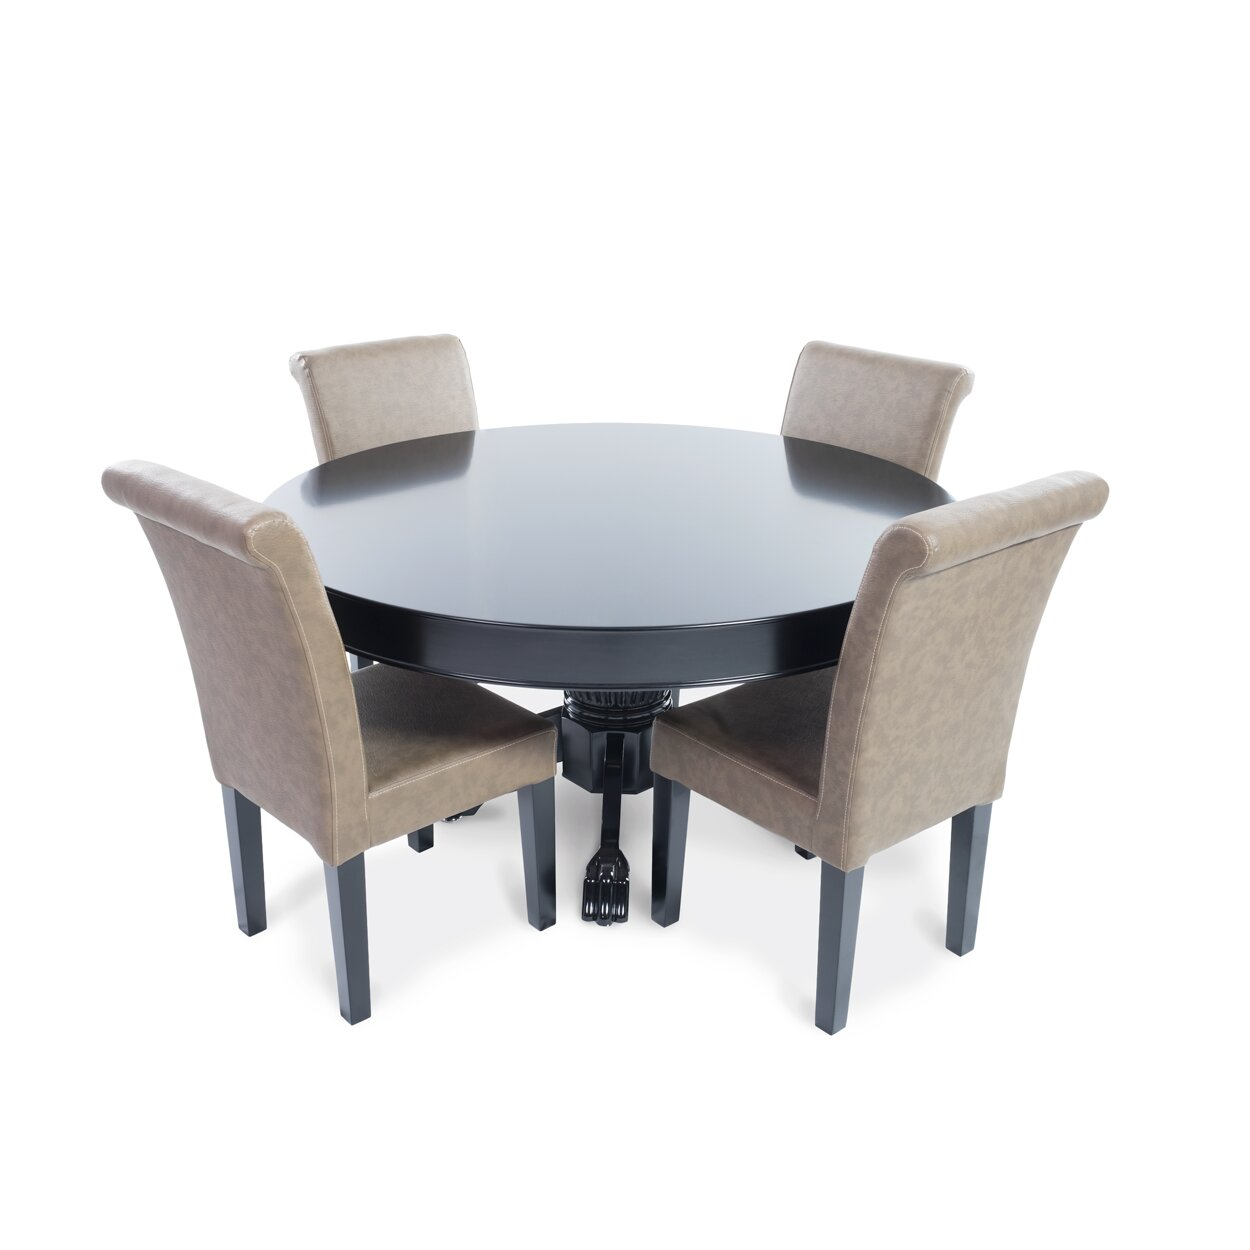 Nighthawk 5 Piece Poker Dining Table Set with Lounge